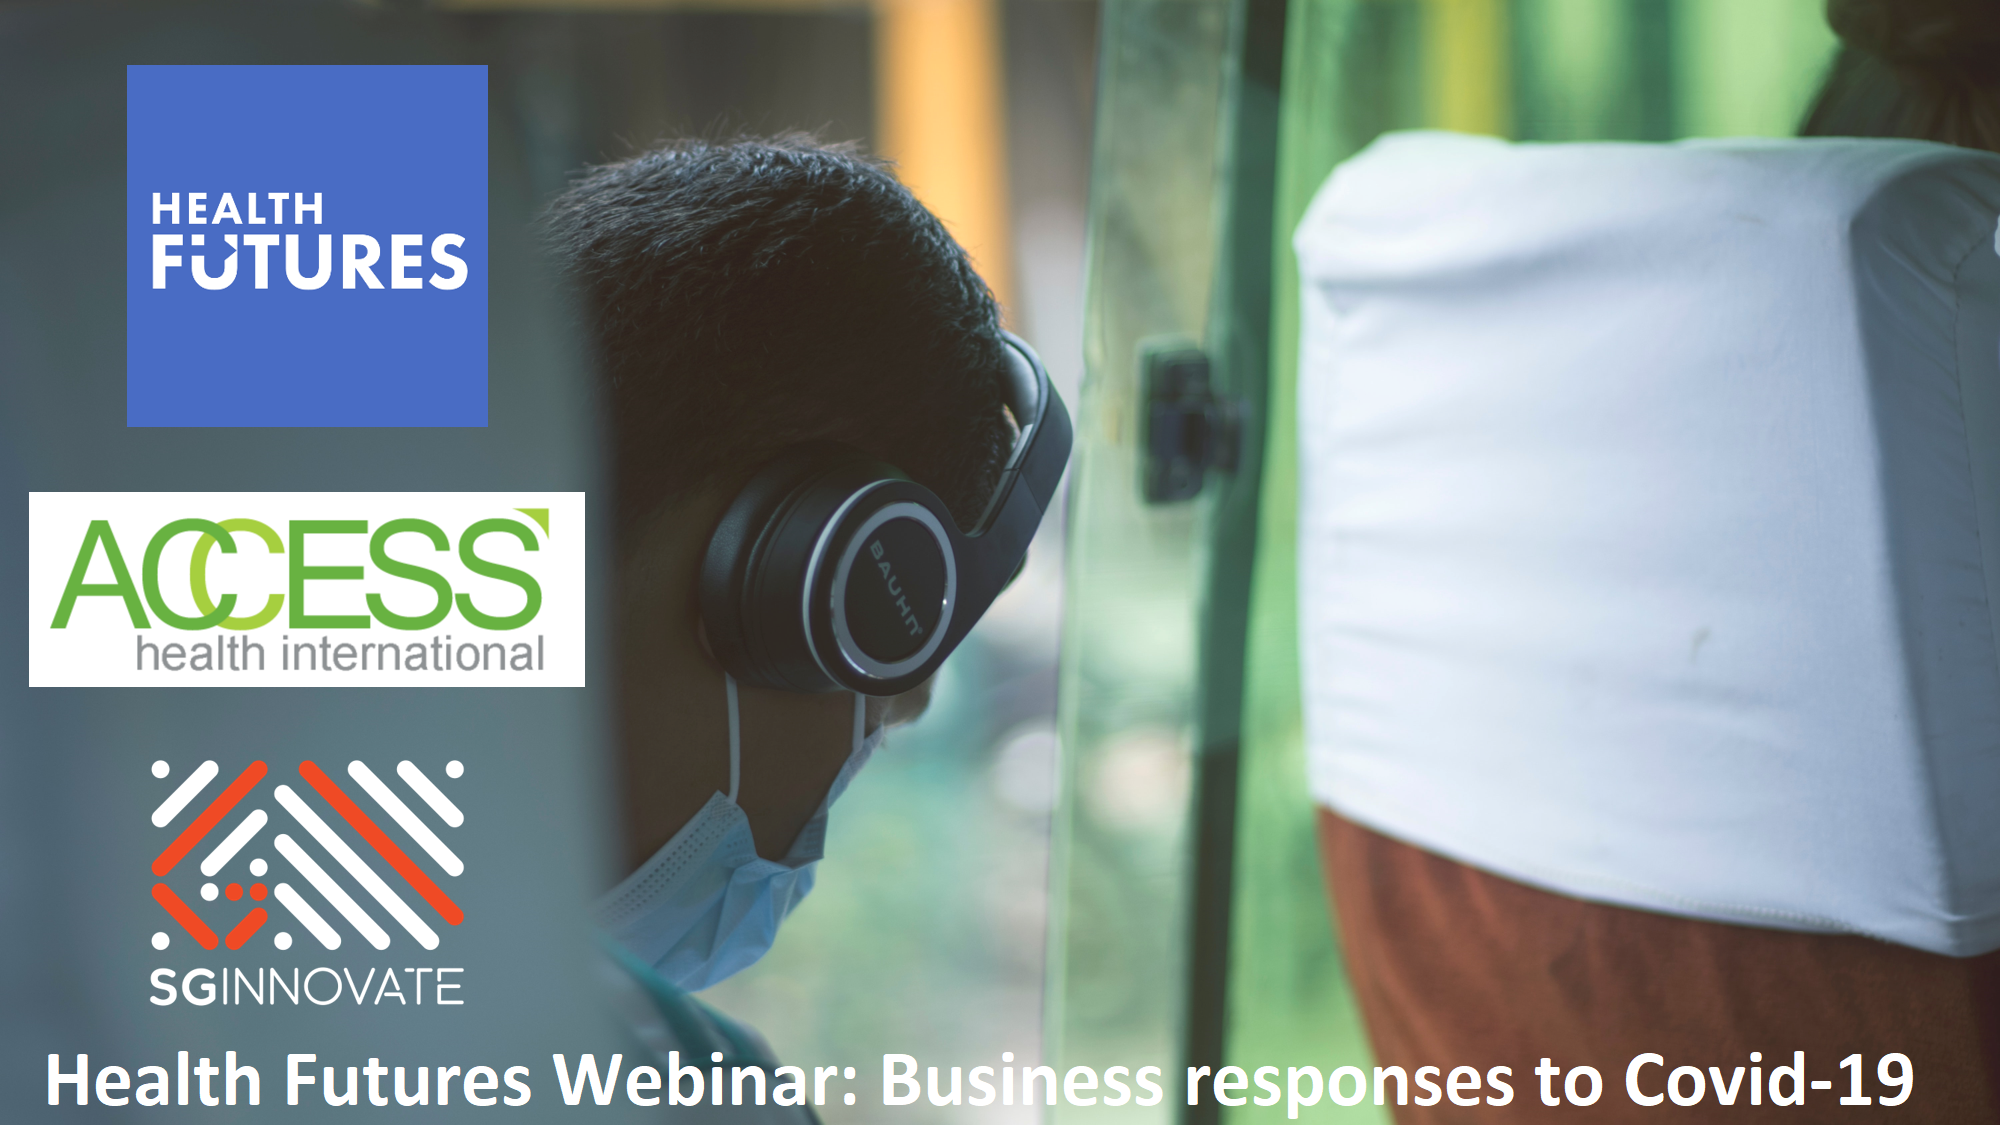 Health Futures webinar: Business responses to Covid-19